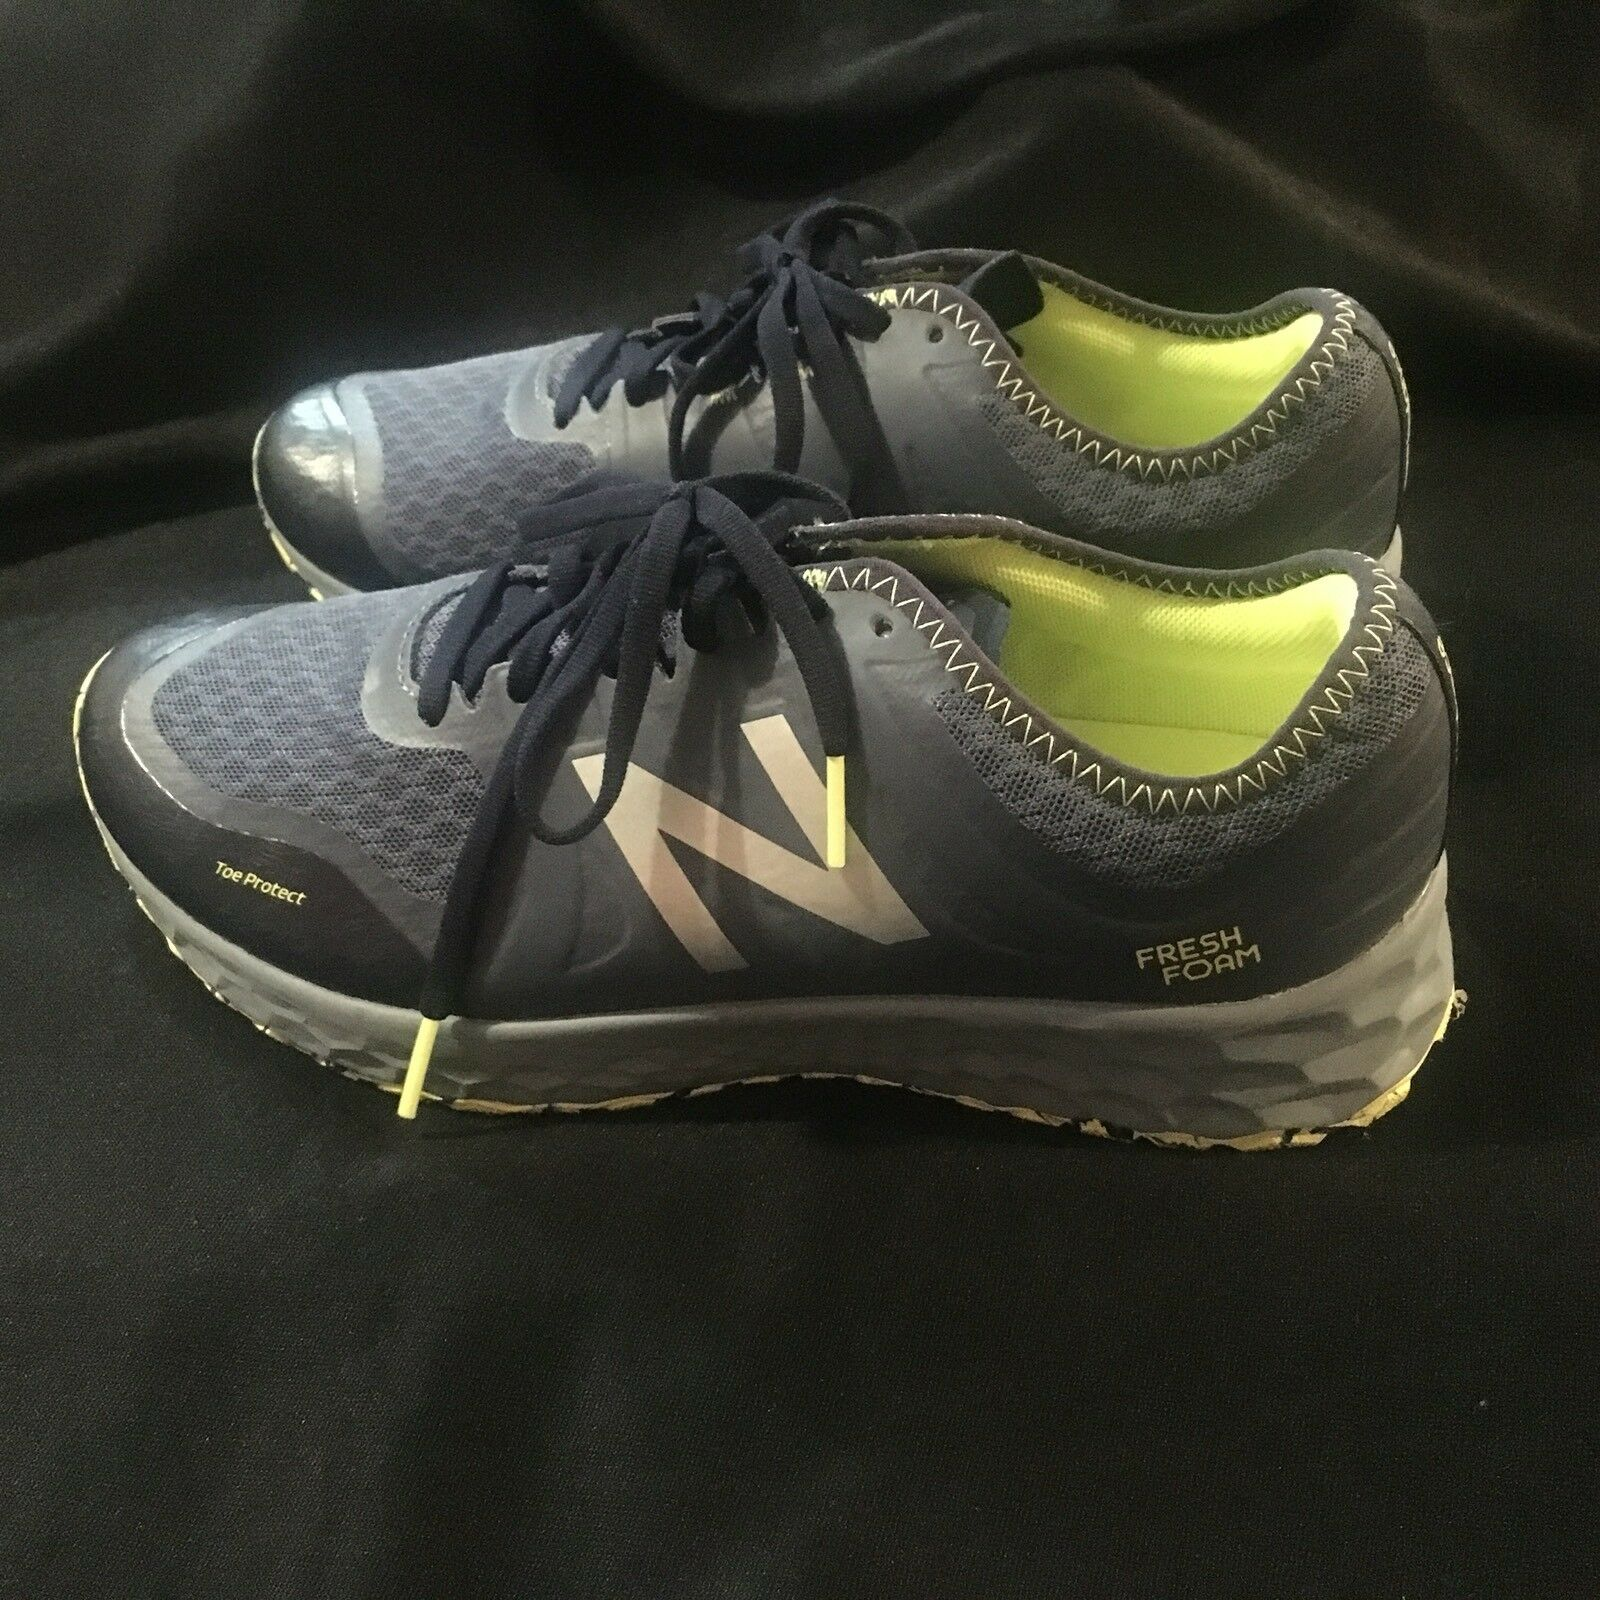 New Balance Women's Kaymin TRL Fresh Foam Trail Running Vintage Size 10.5